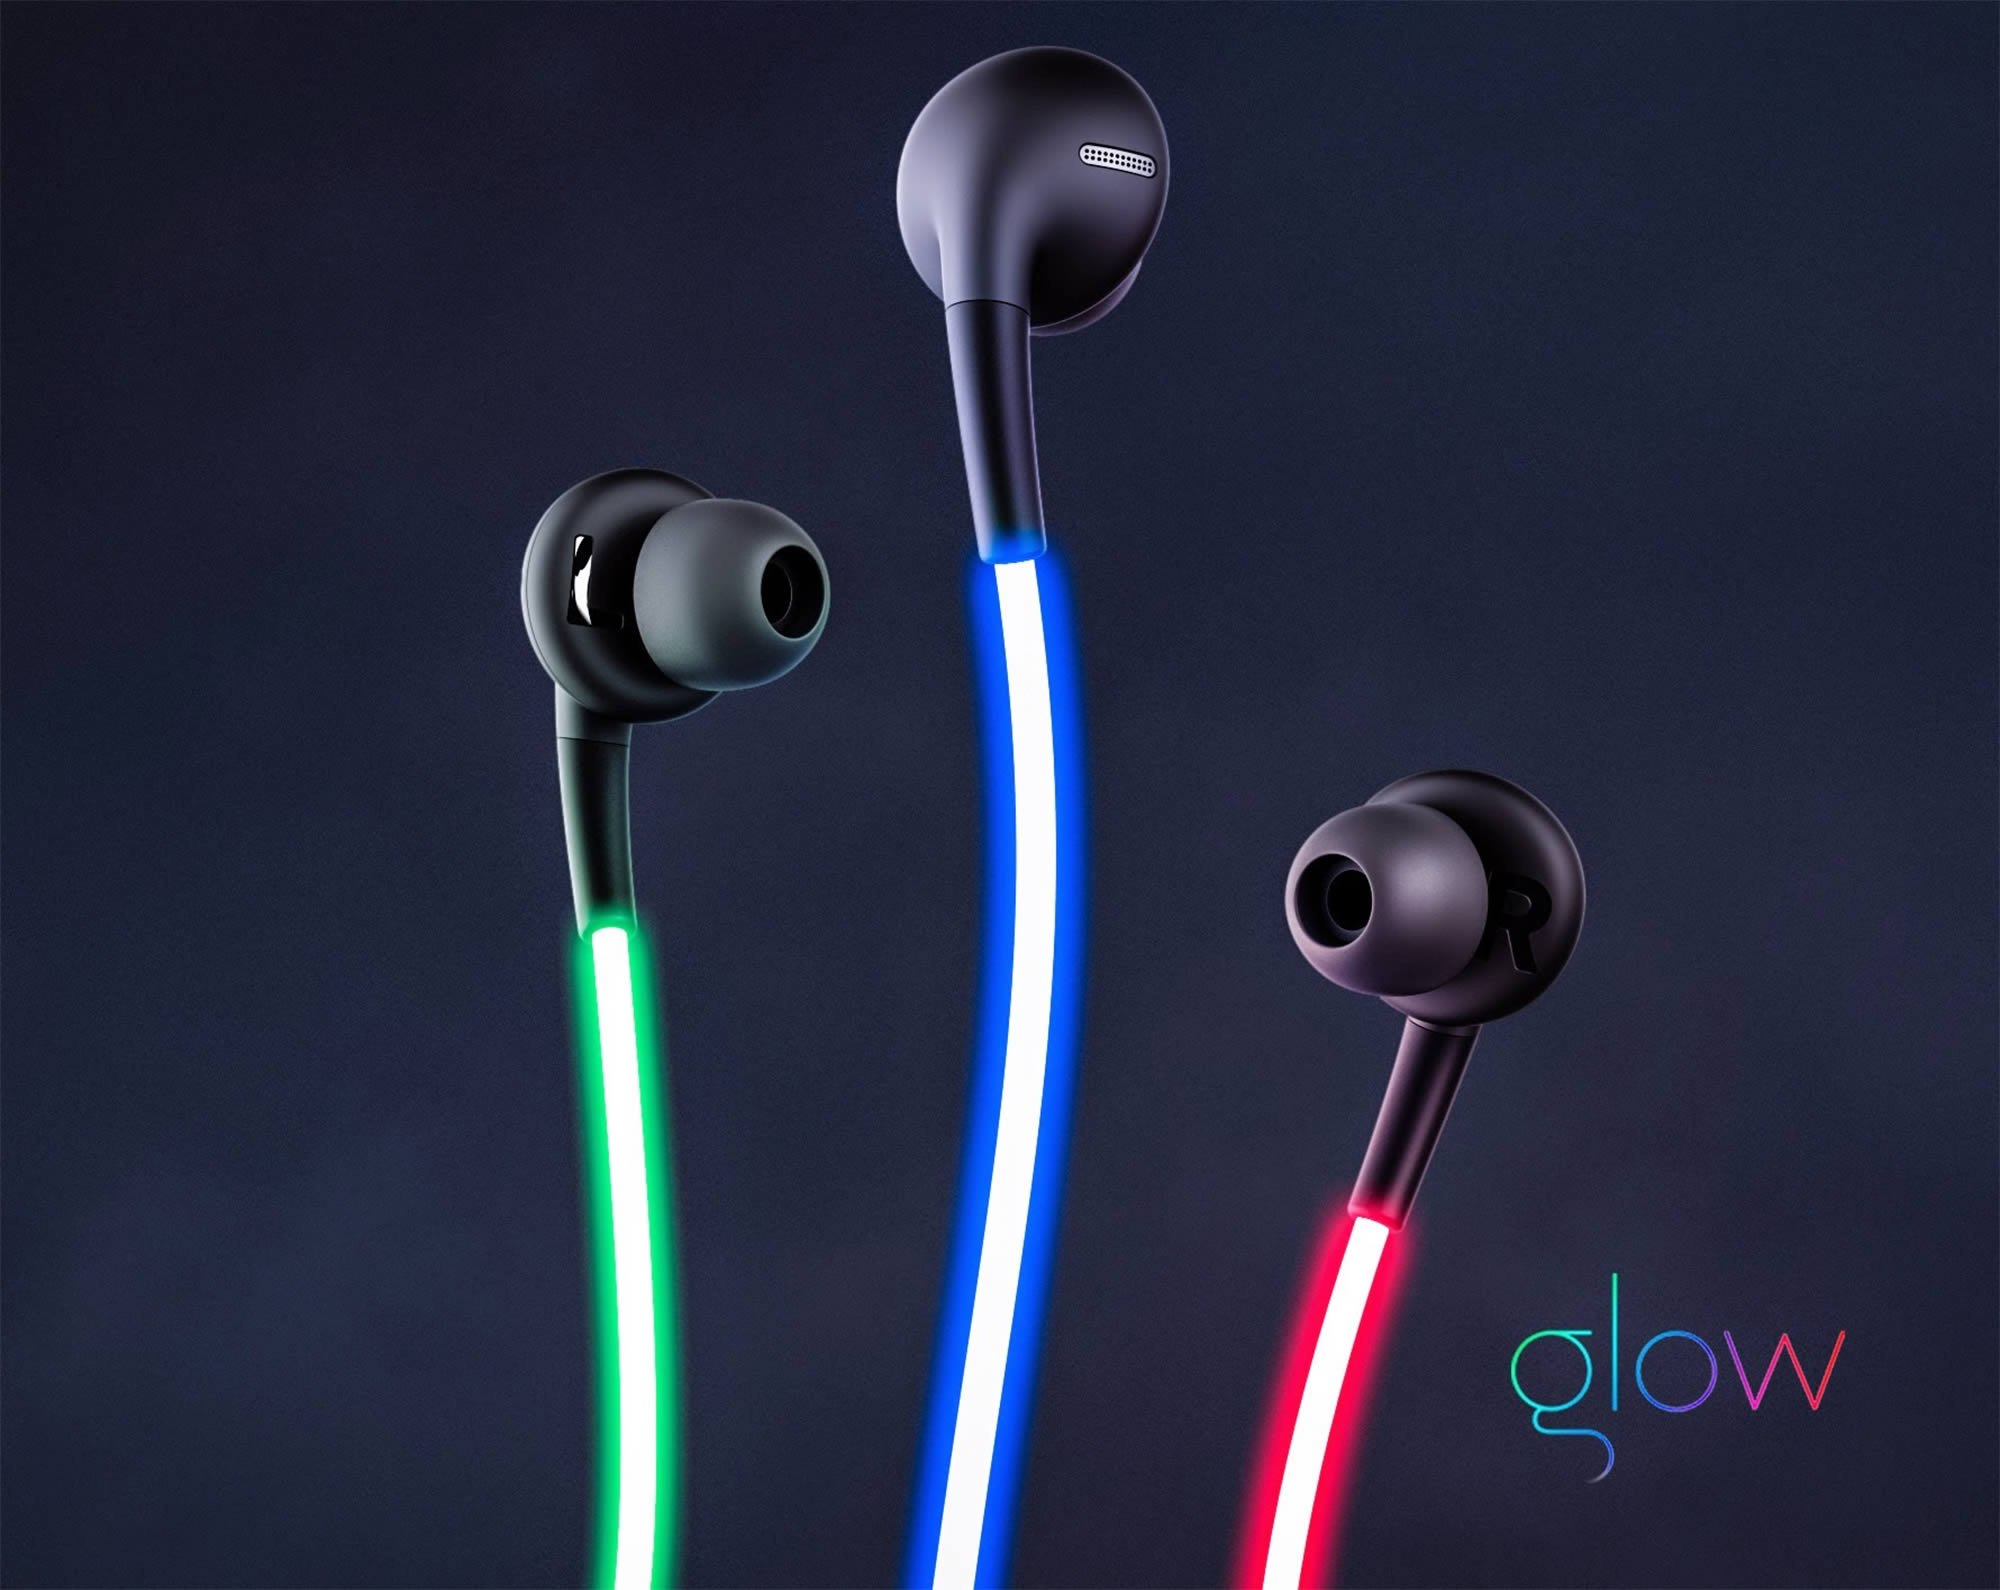 glow laser light headphones